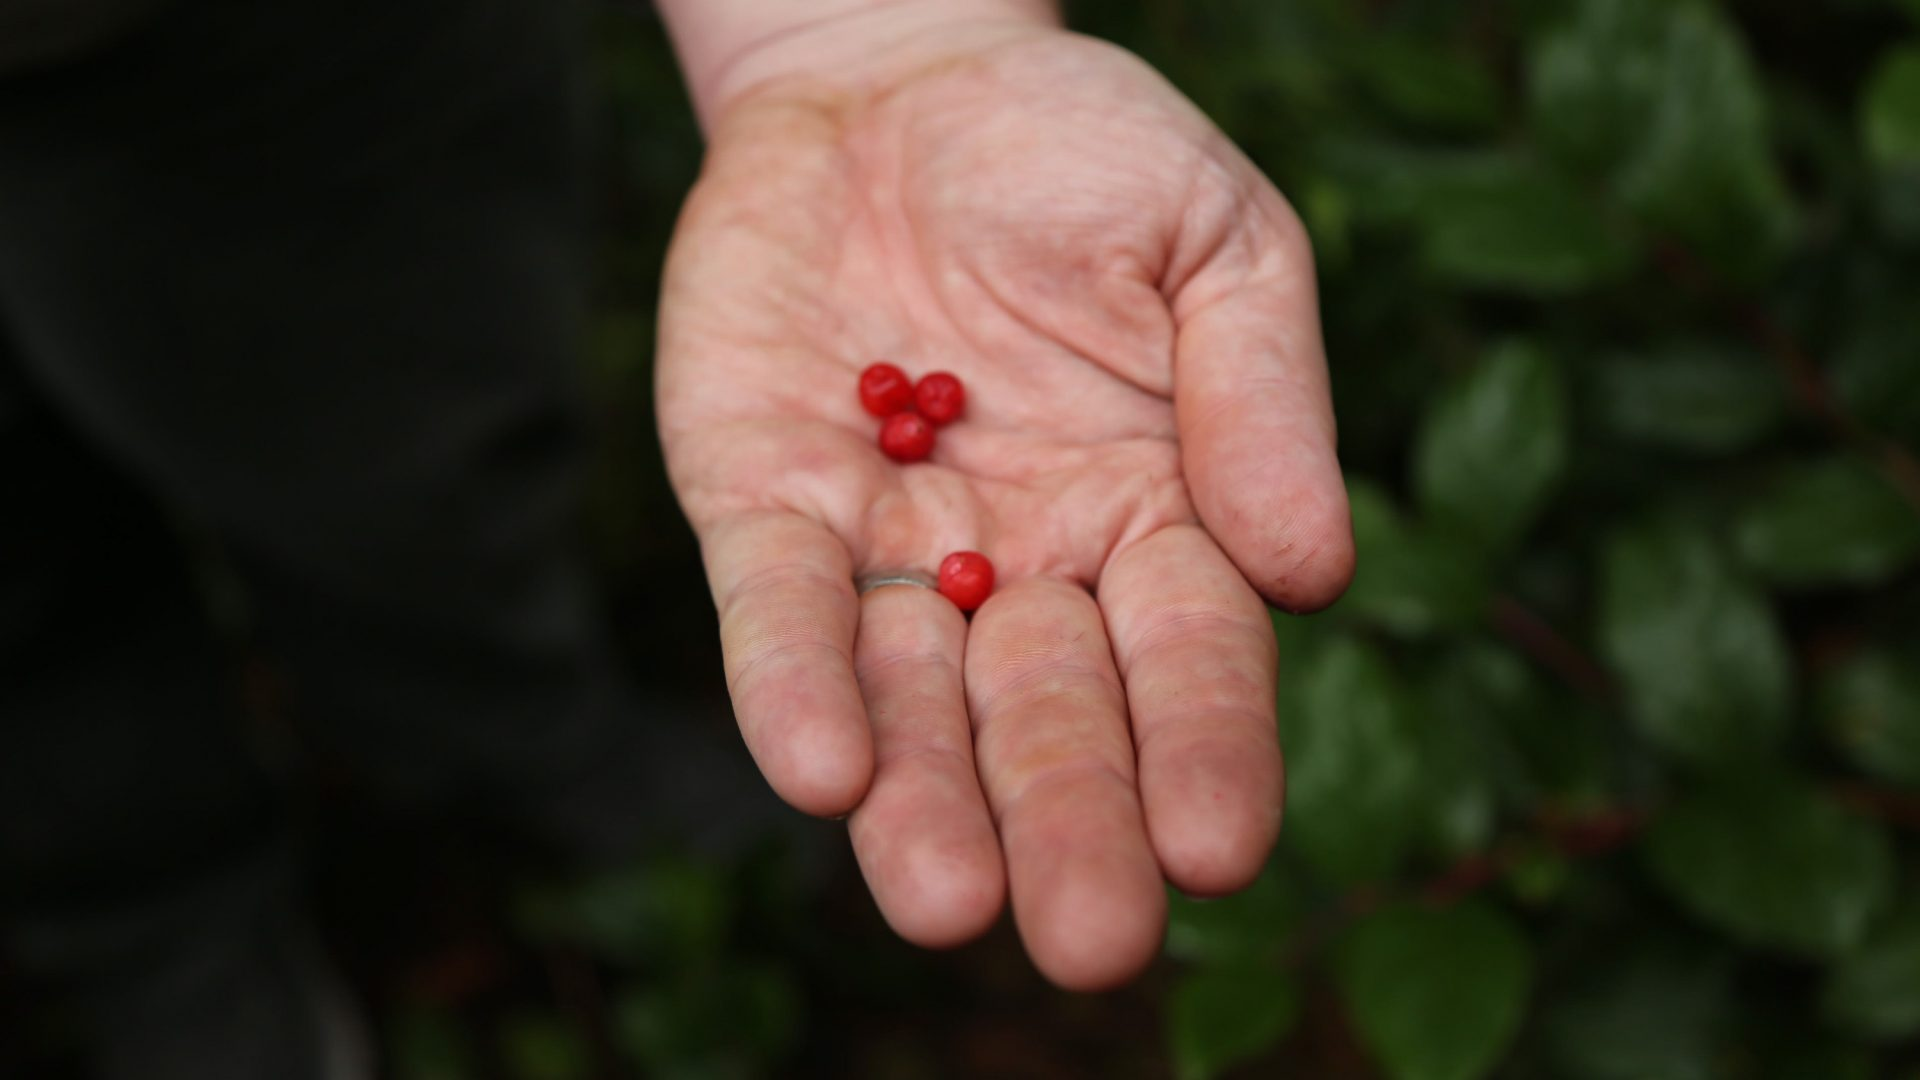 Red huckleberries found in the forests of Vancouver Island.